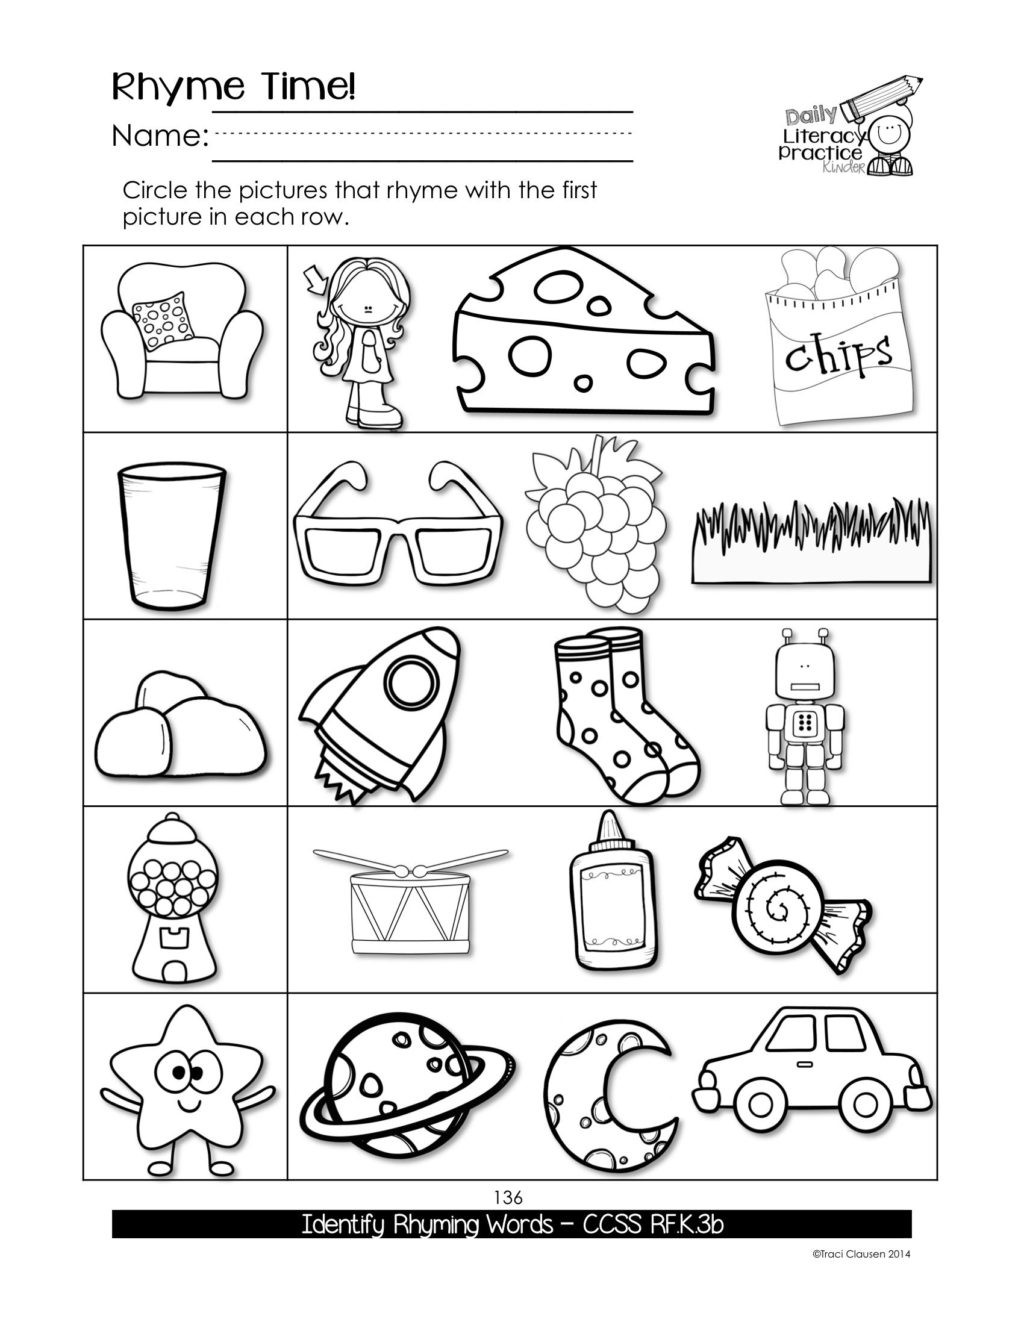 Social Studies Worksheets 6th Grade Worksheet social Stu S Worksheets for Kids Free